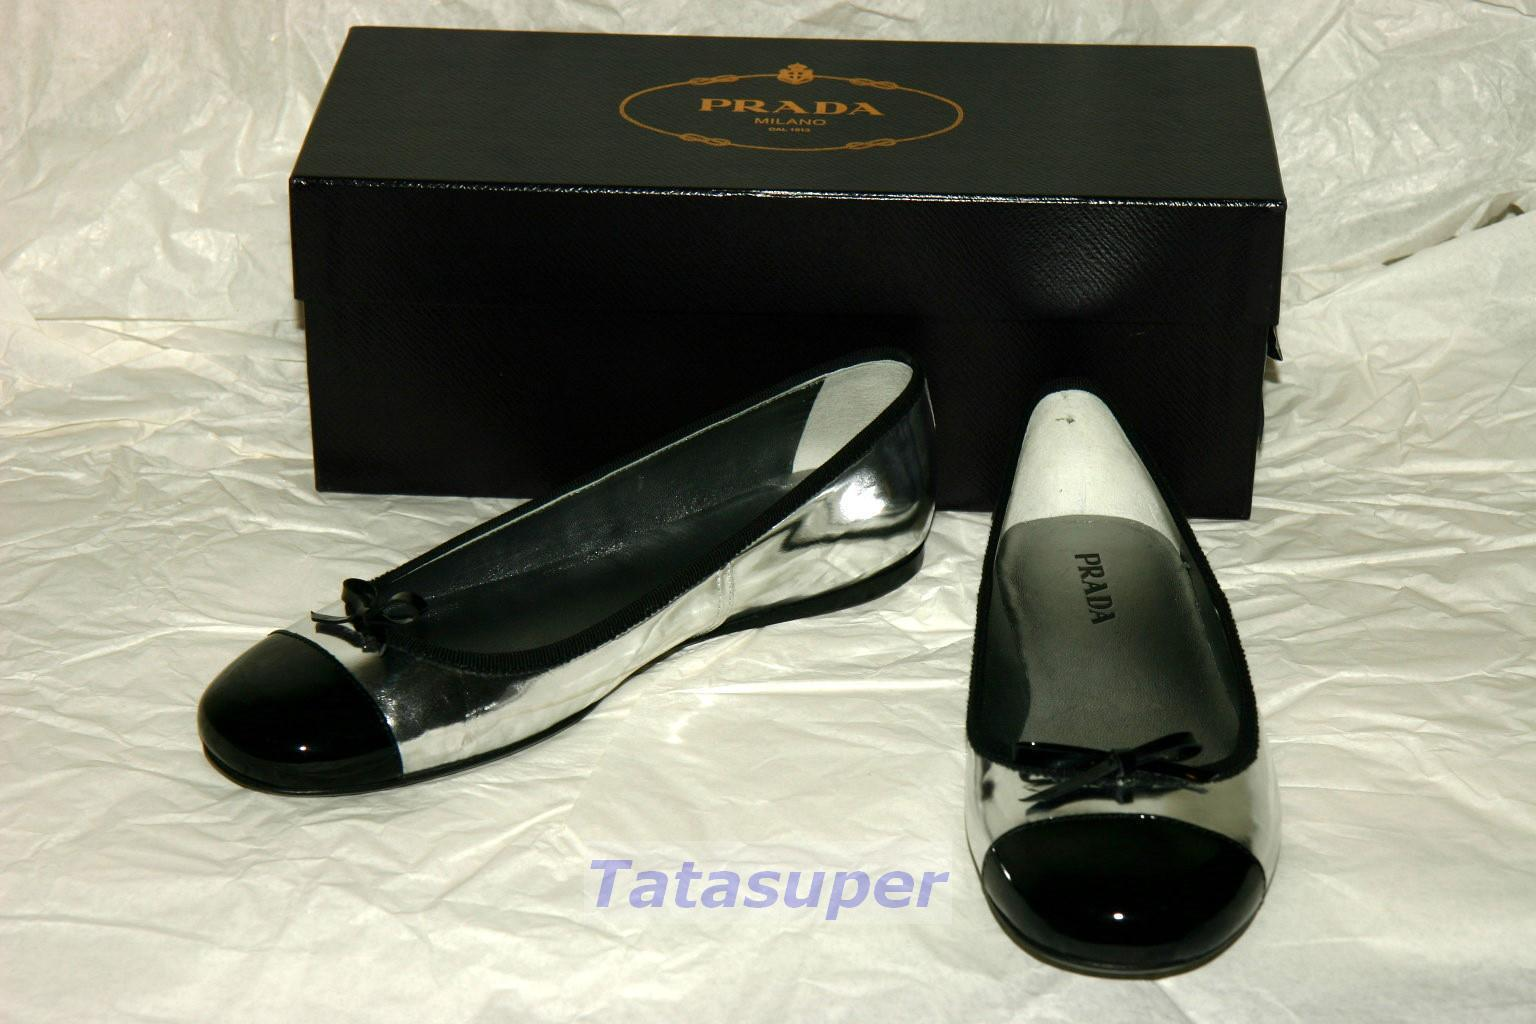 Prada Flats shoes - Patent Silver and Black Size 37.5 100% Authentic BNIB